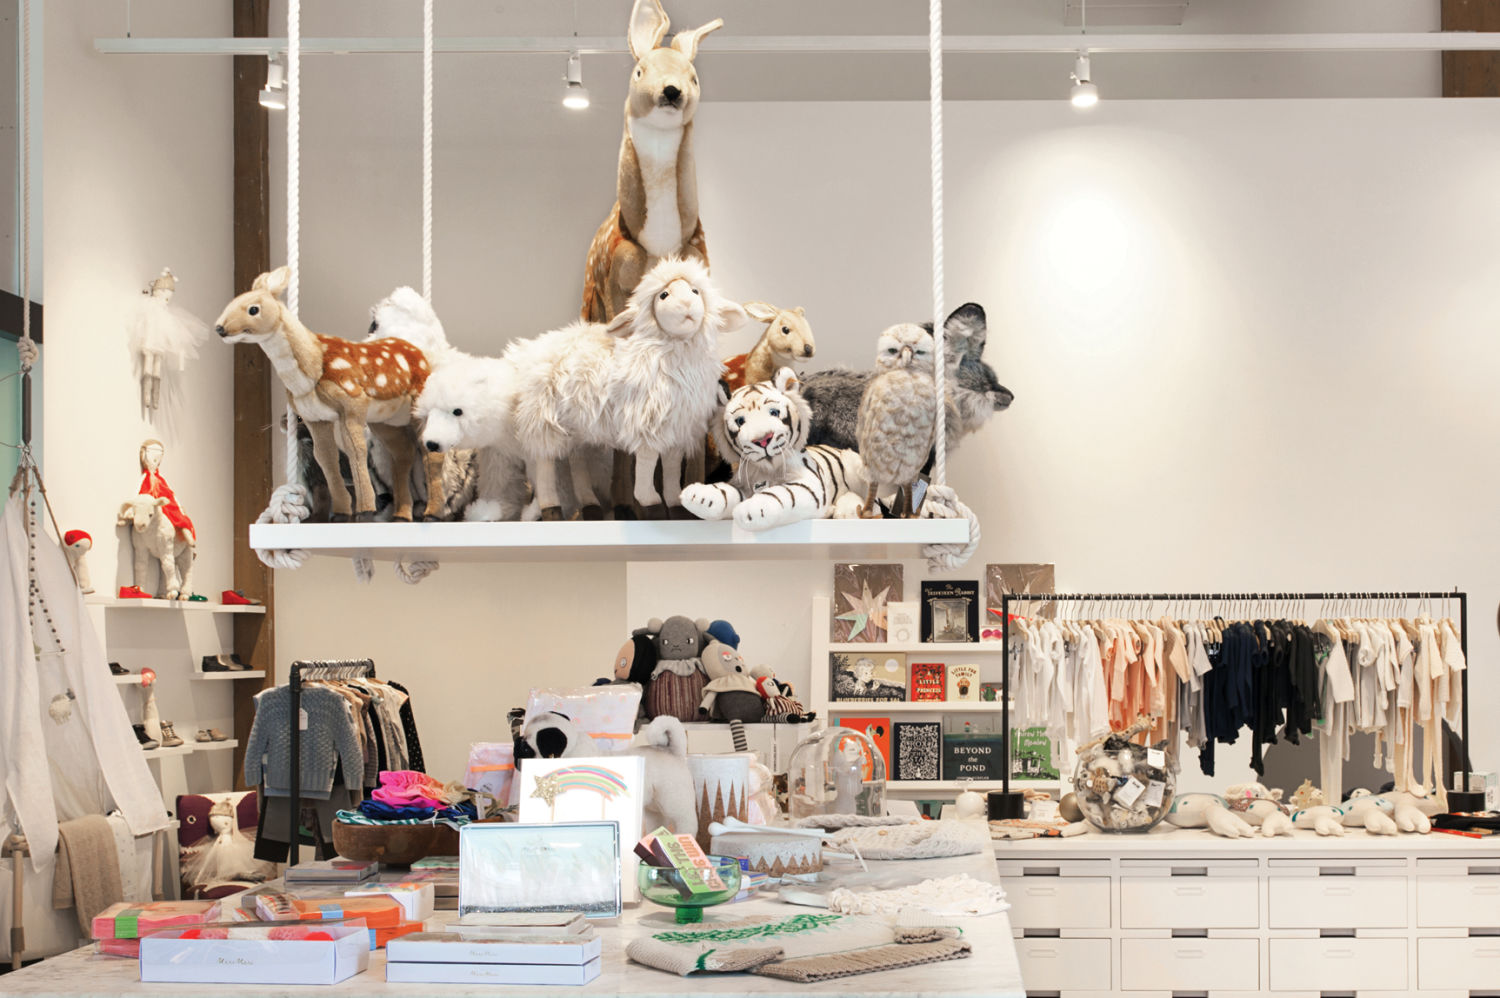 7a9a05a4a9d1 The 28 Best Clothing Stores and Boutiques in Seattle Right Now ...